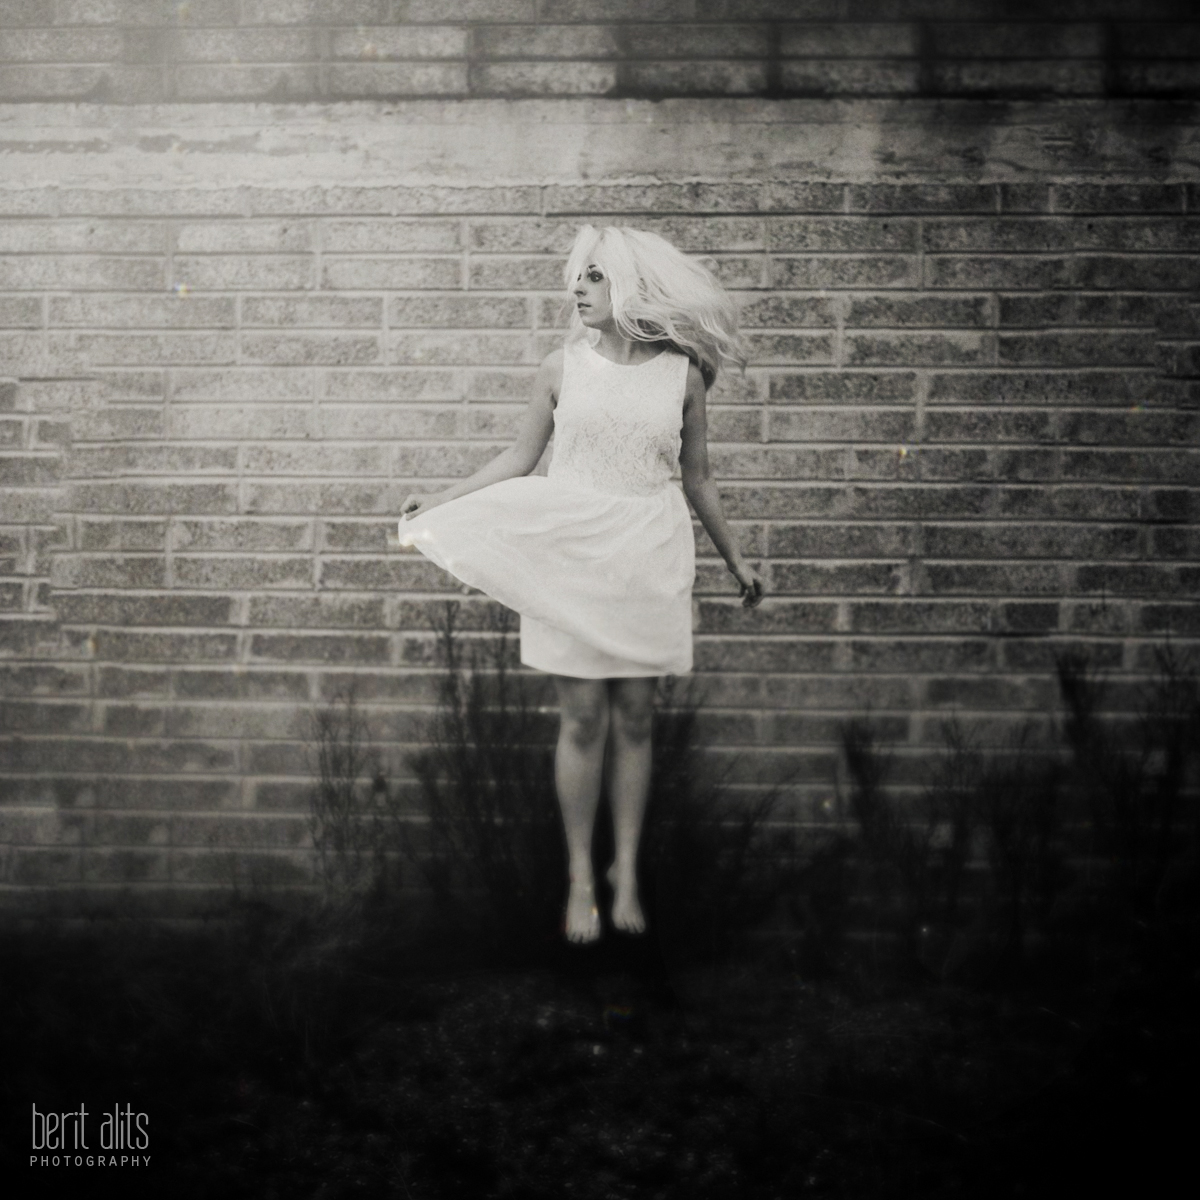 01_dancer_white_dress_black_and_white_artistic_conceptual_nikon_d800_50_mm_f1.4_clonmel_photography_photographer_ireland_tipperary_dreamy_